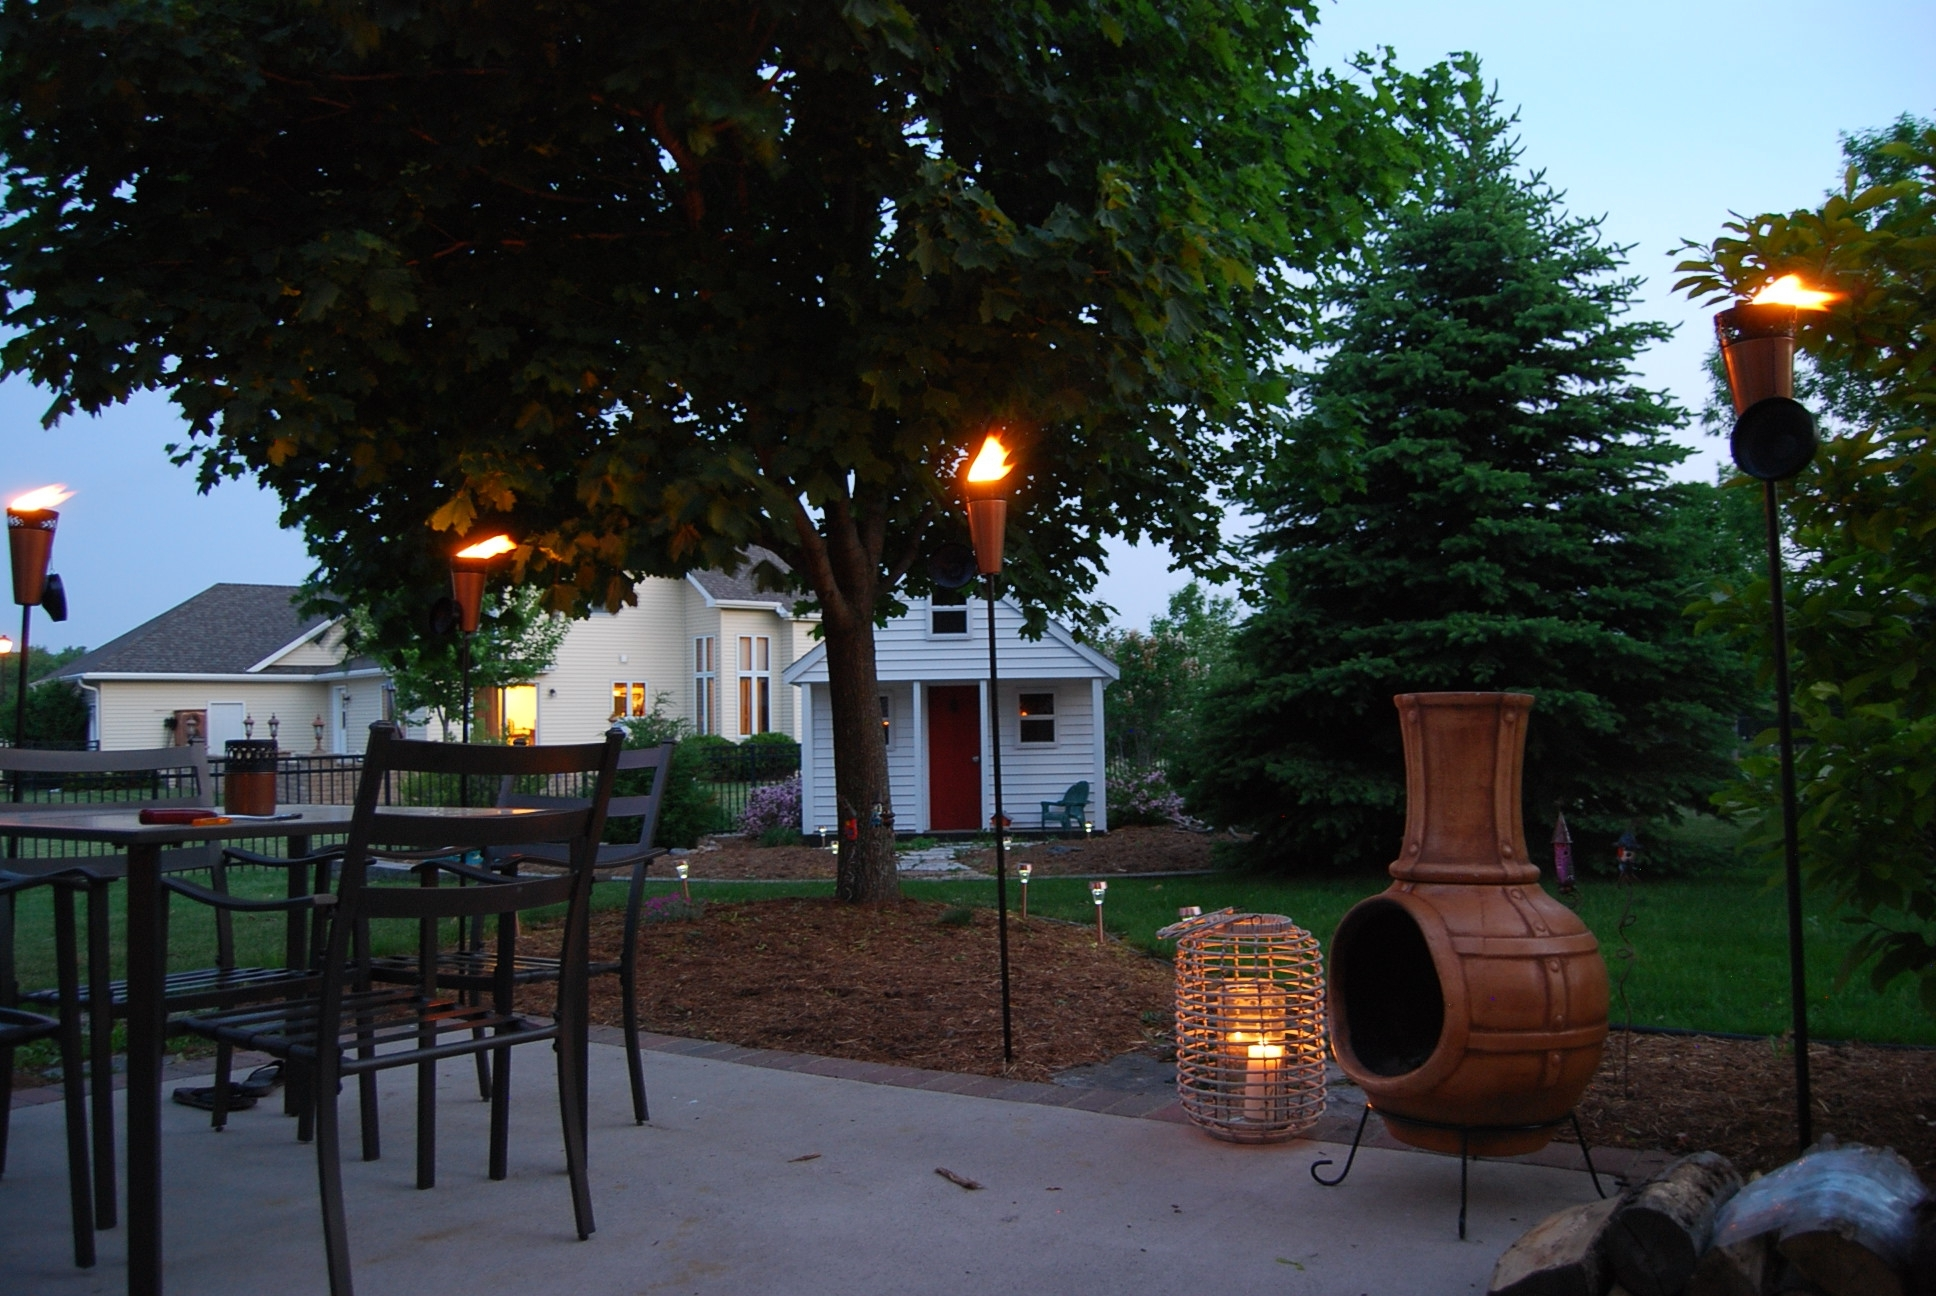 Patio Torches New Propane Tiki Torches For Sale Led Flame Lamp For Favorite Outdoor Tiki Lanterns (View 15 of 20)